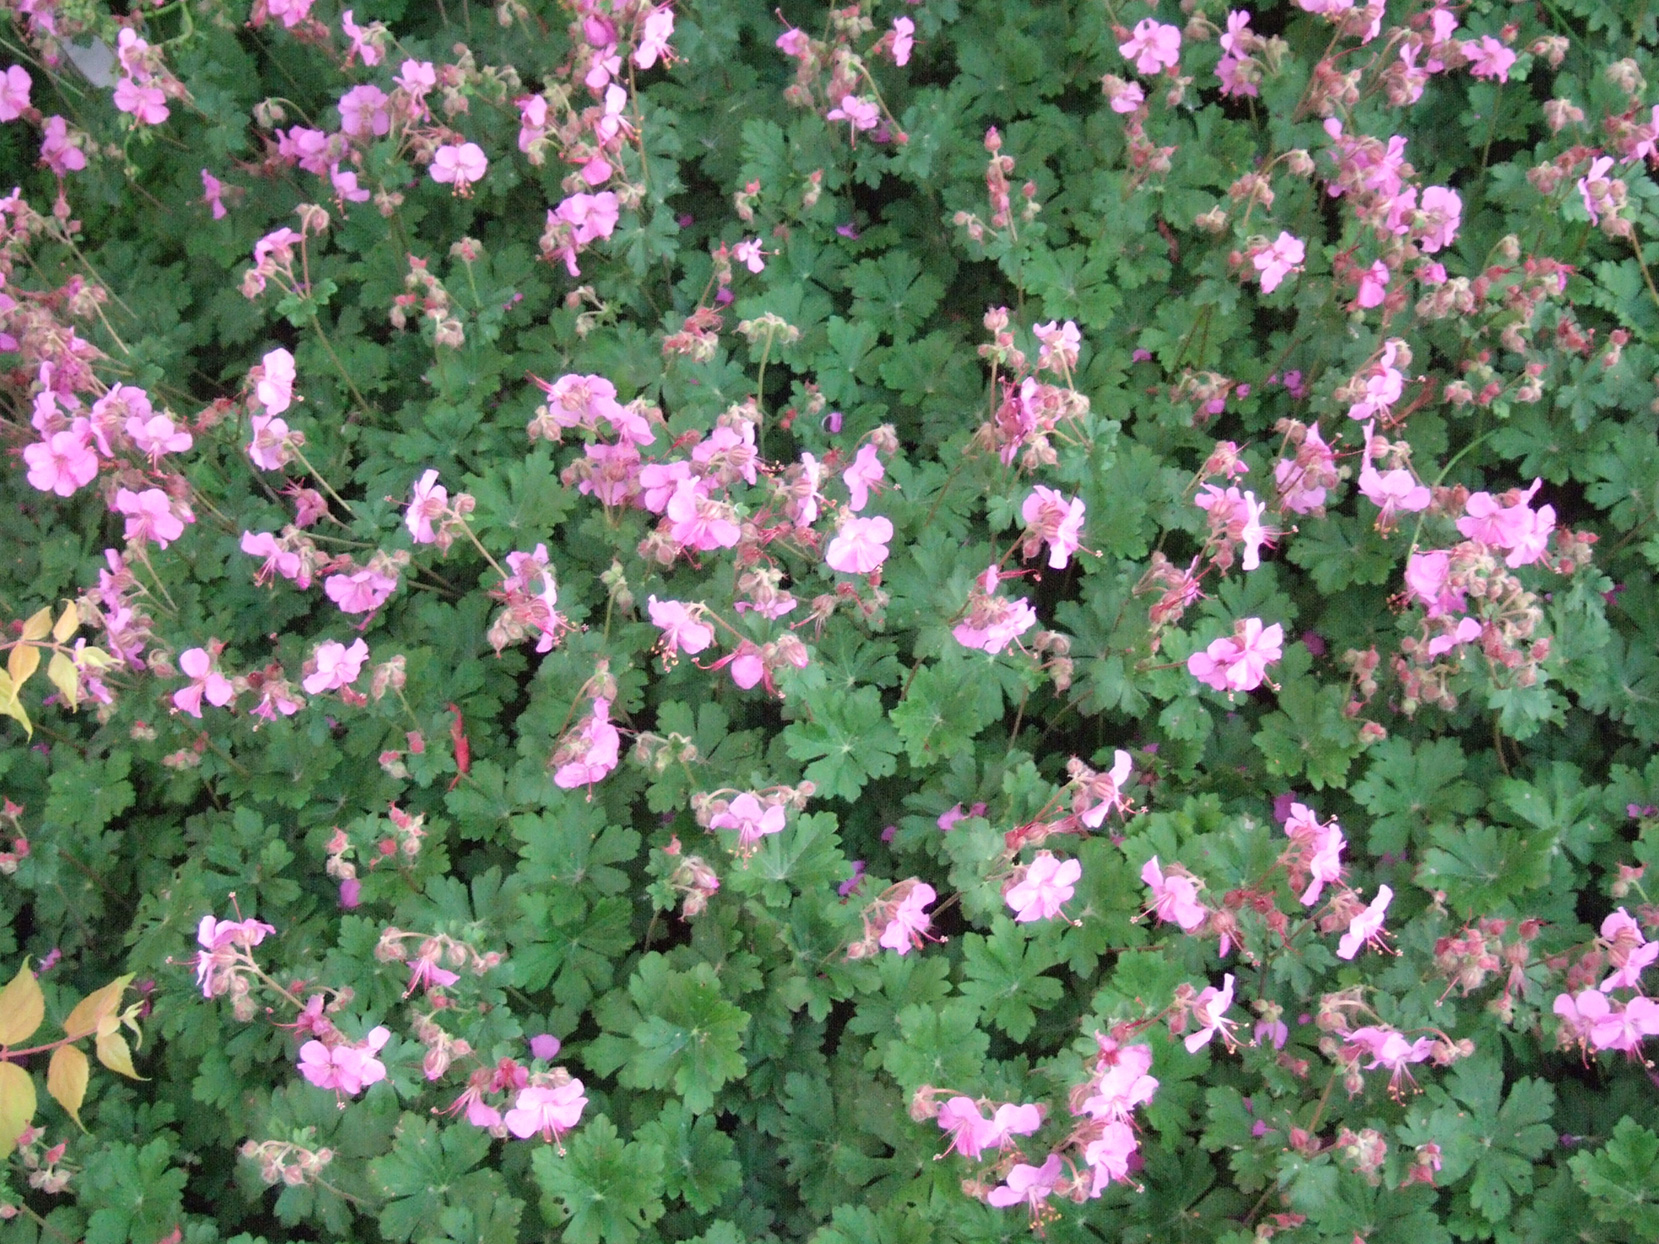 Bigroot geranium with pink flowers